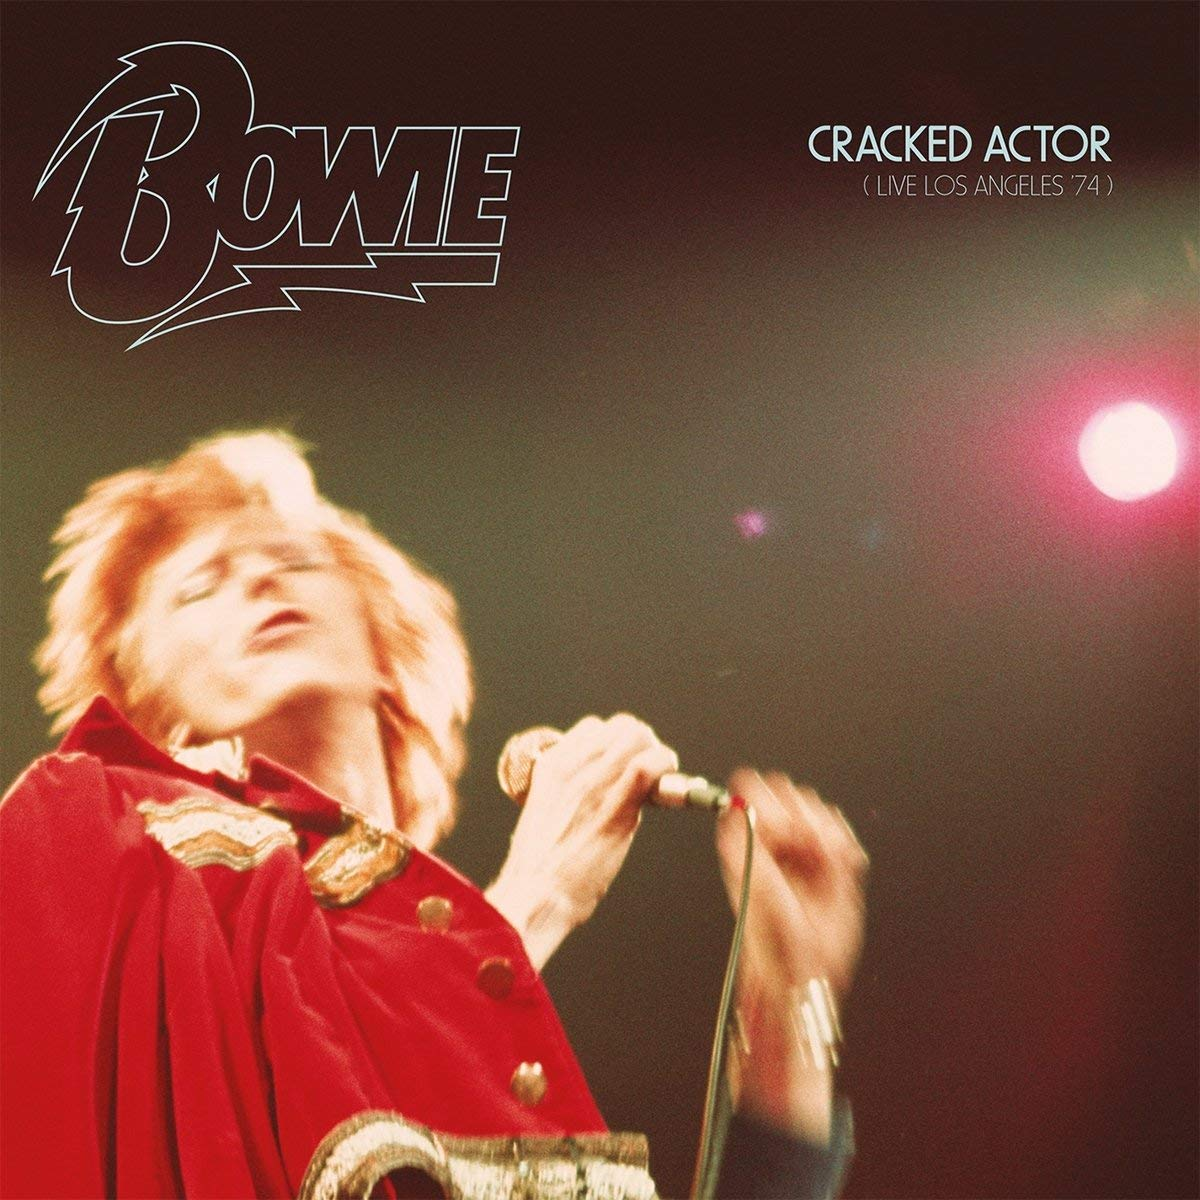 David Bowie Cracked Actor Live in Los Angeles '74